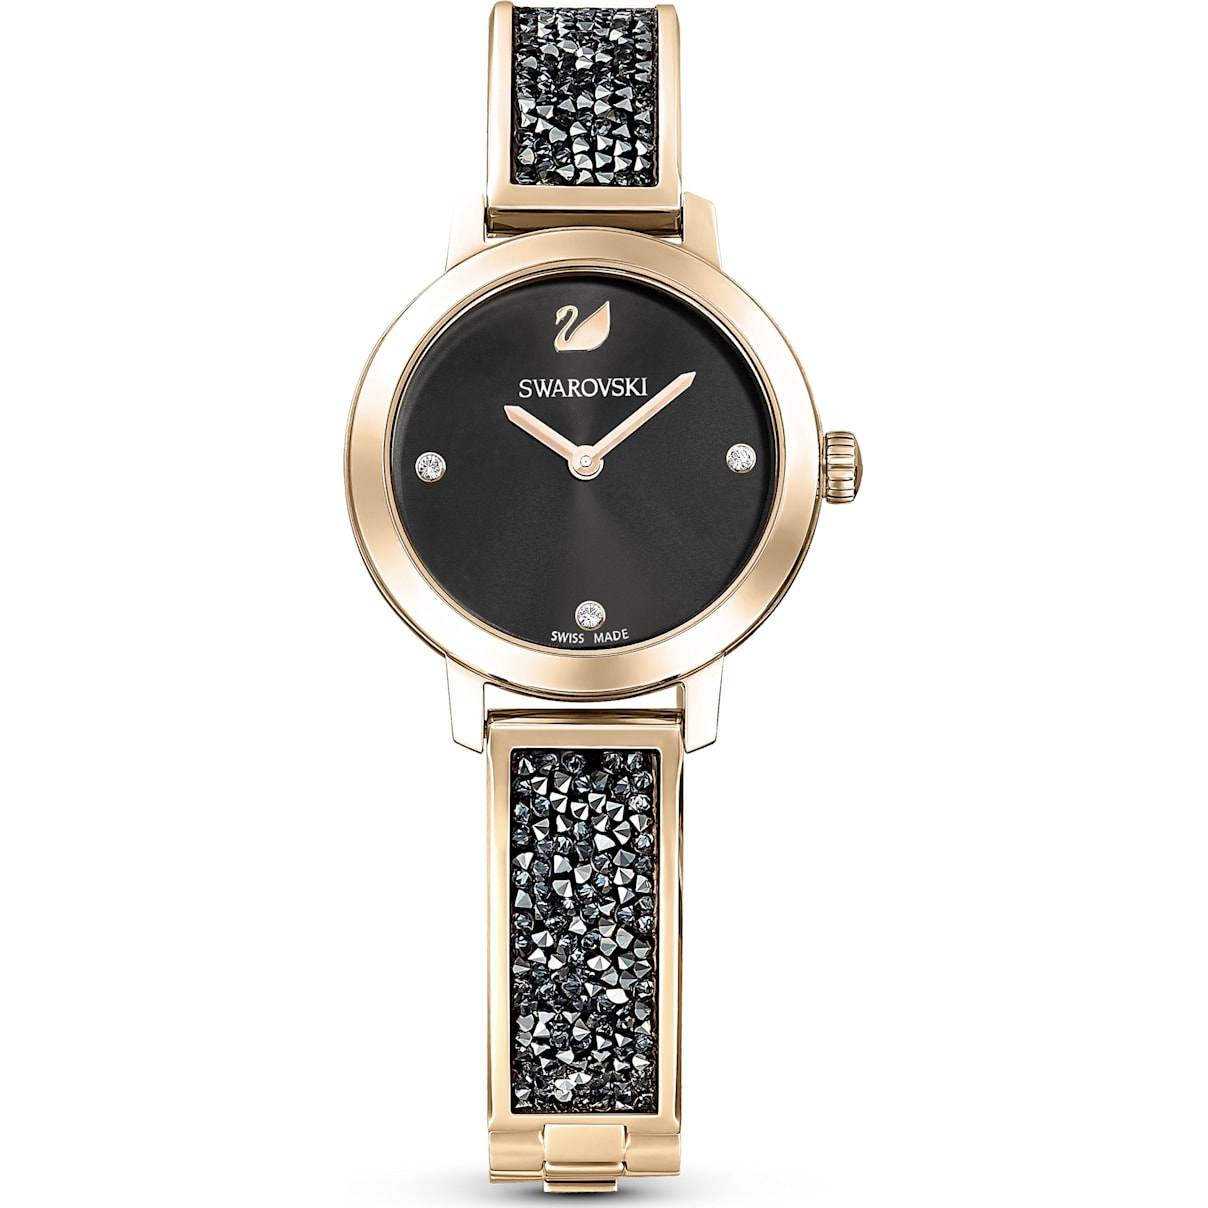 Swarovski Cosmic Rock Watch, Metal bracelet, Gray, Champagne-gold tone PVD